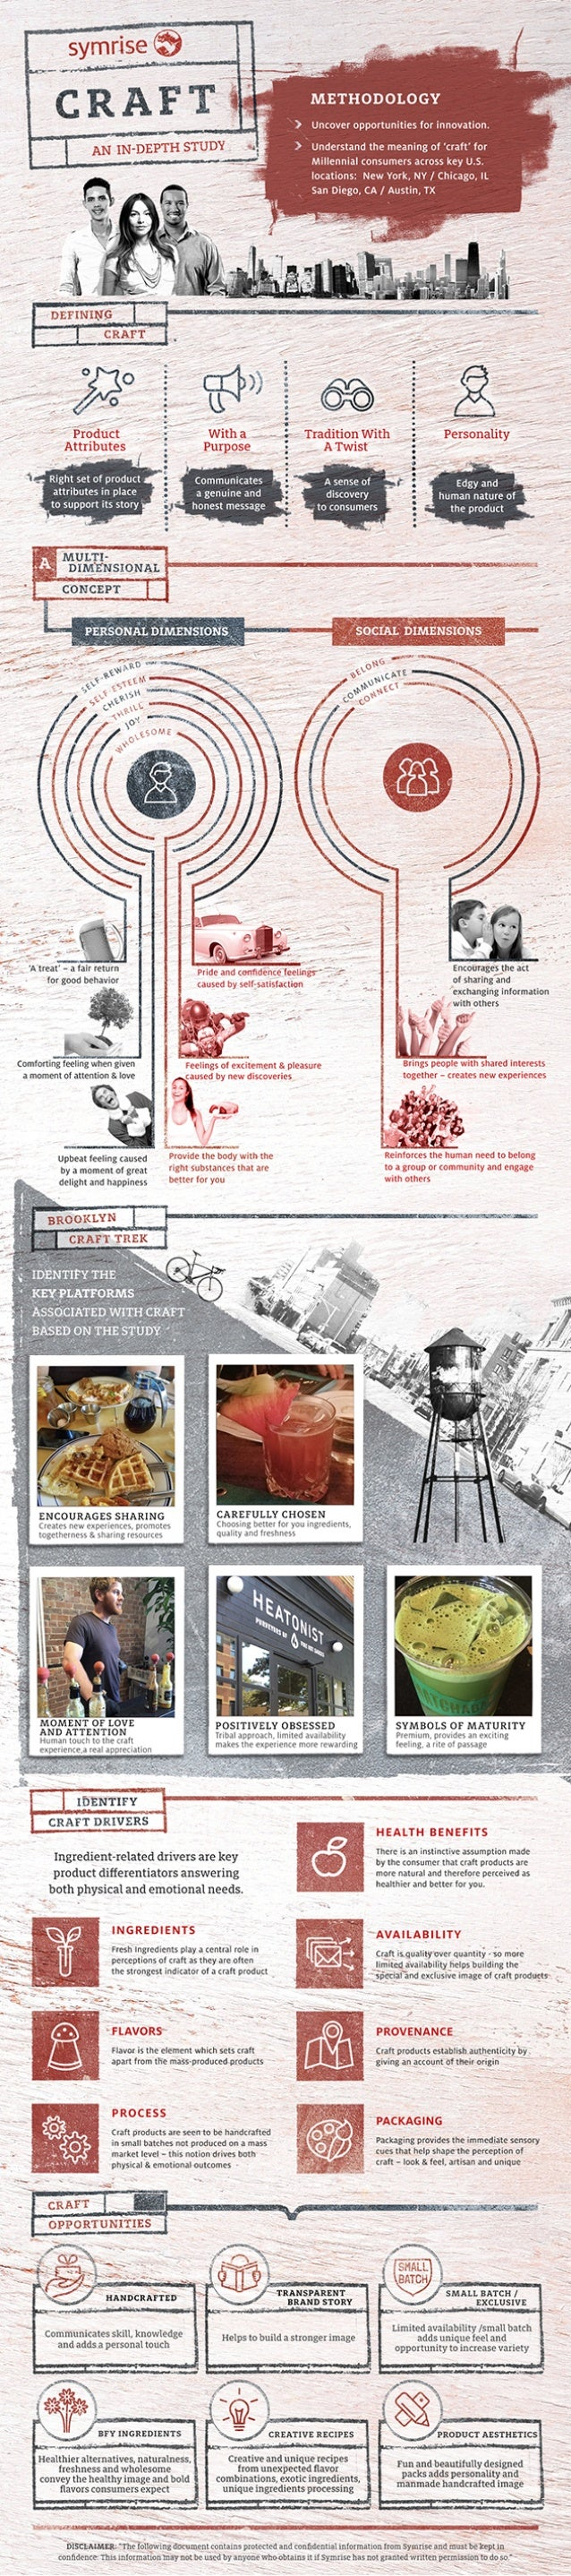 Infographic: Defining Craft Branding in Food and Beverage